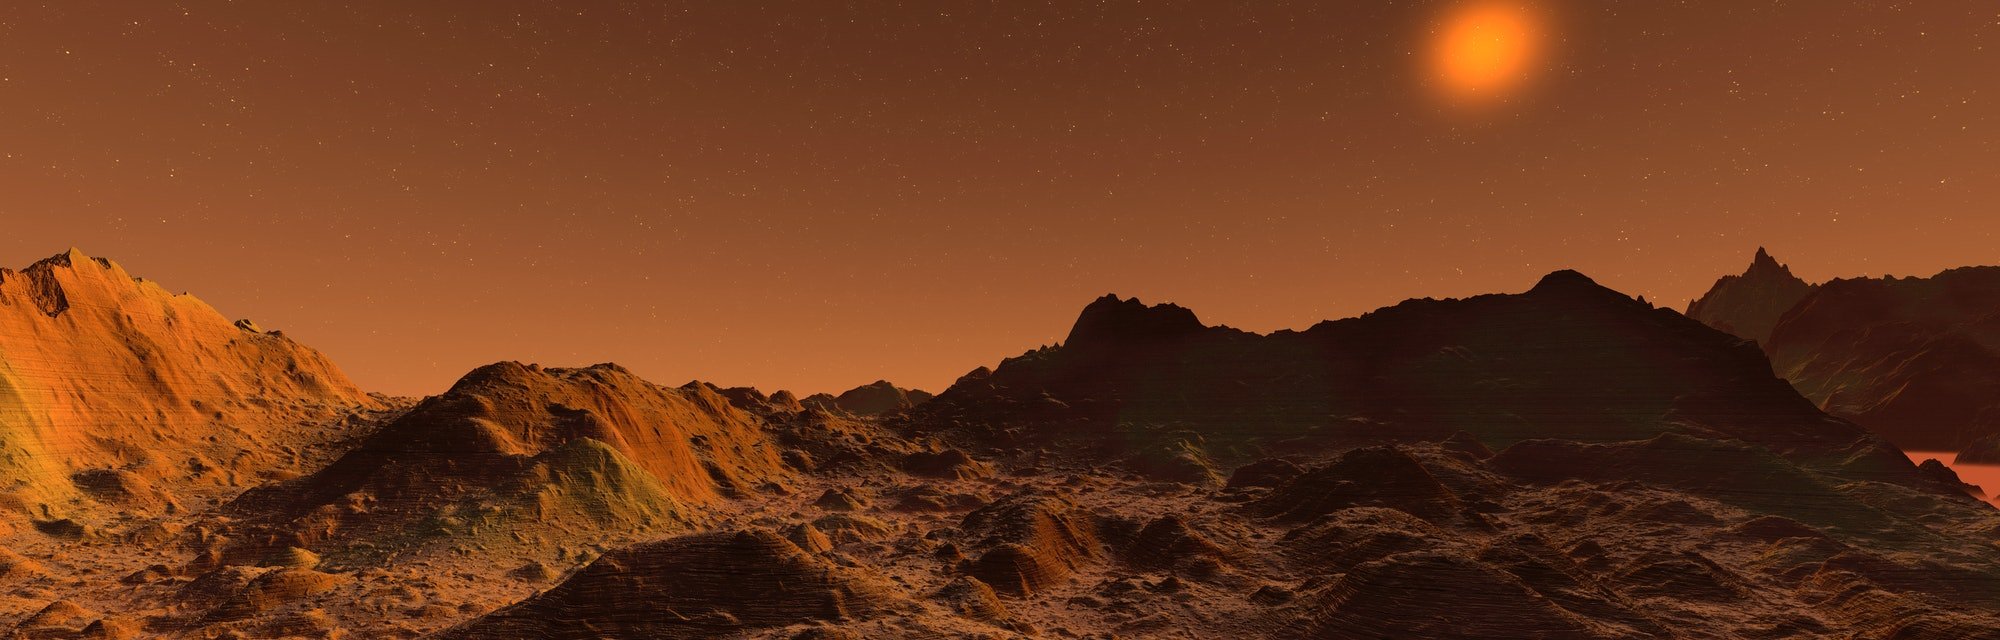 Rendered illustration of the surface of Mars.